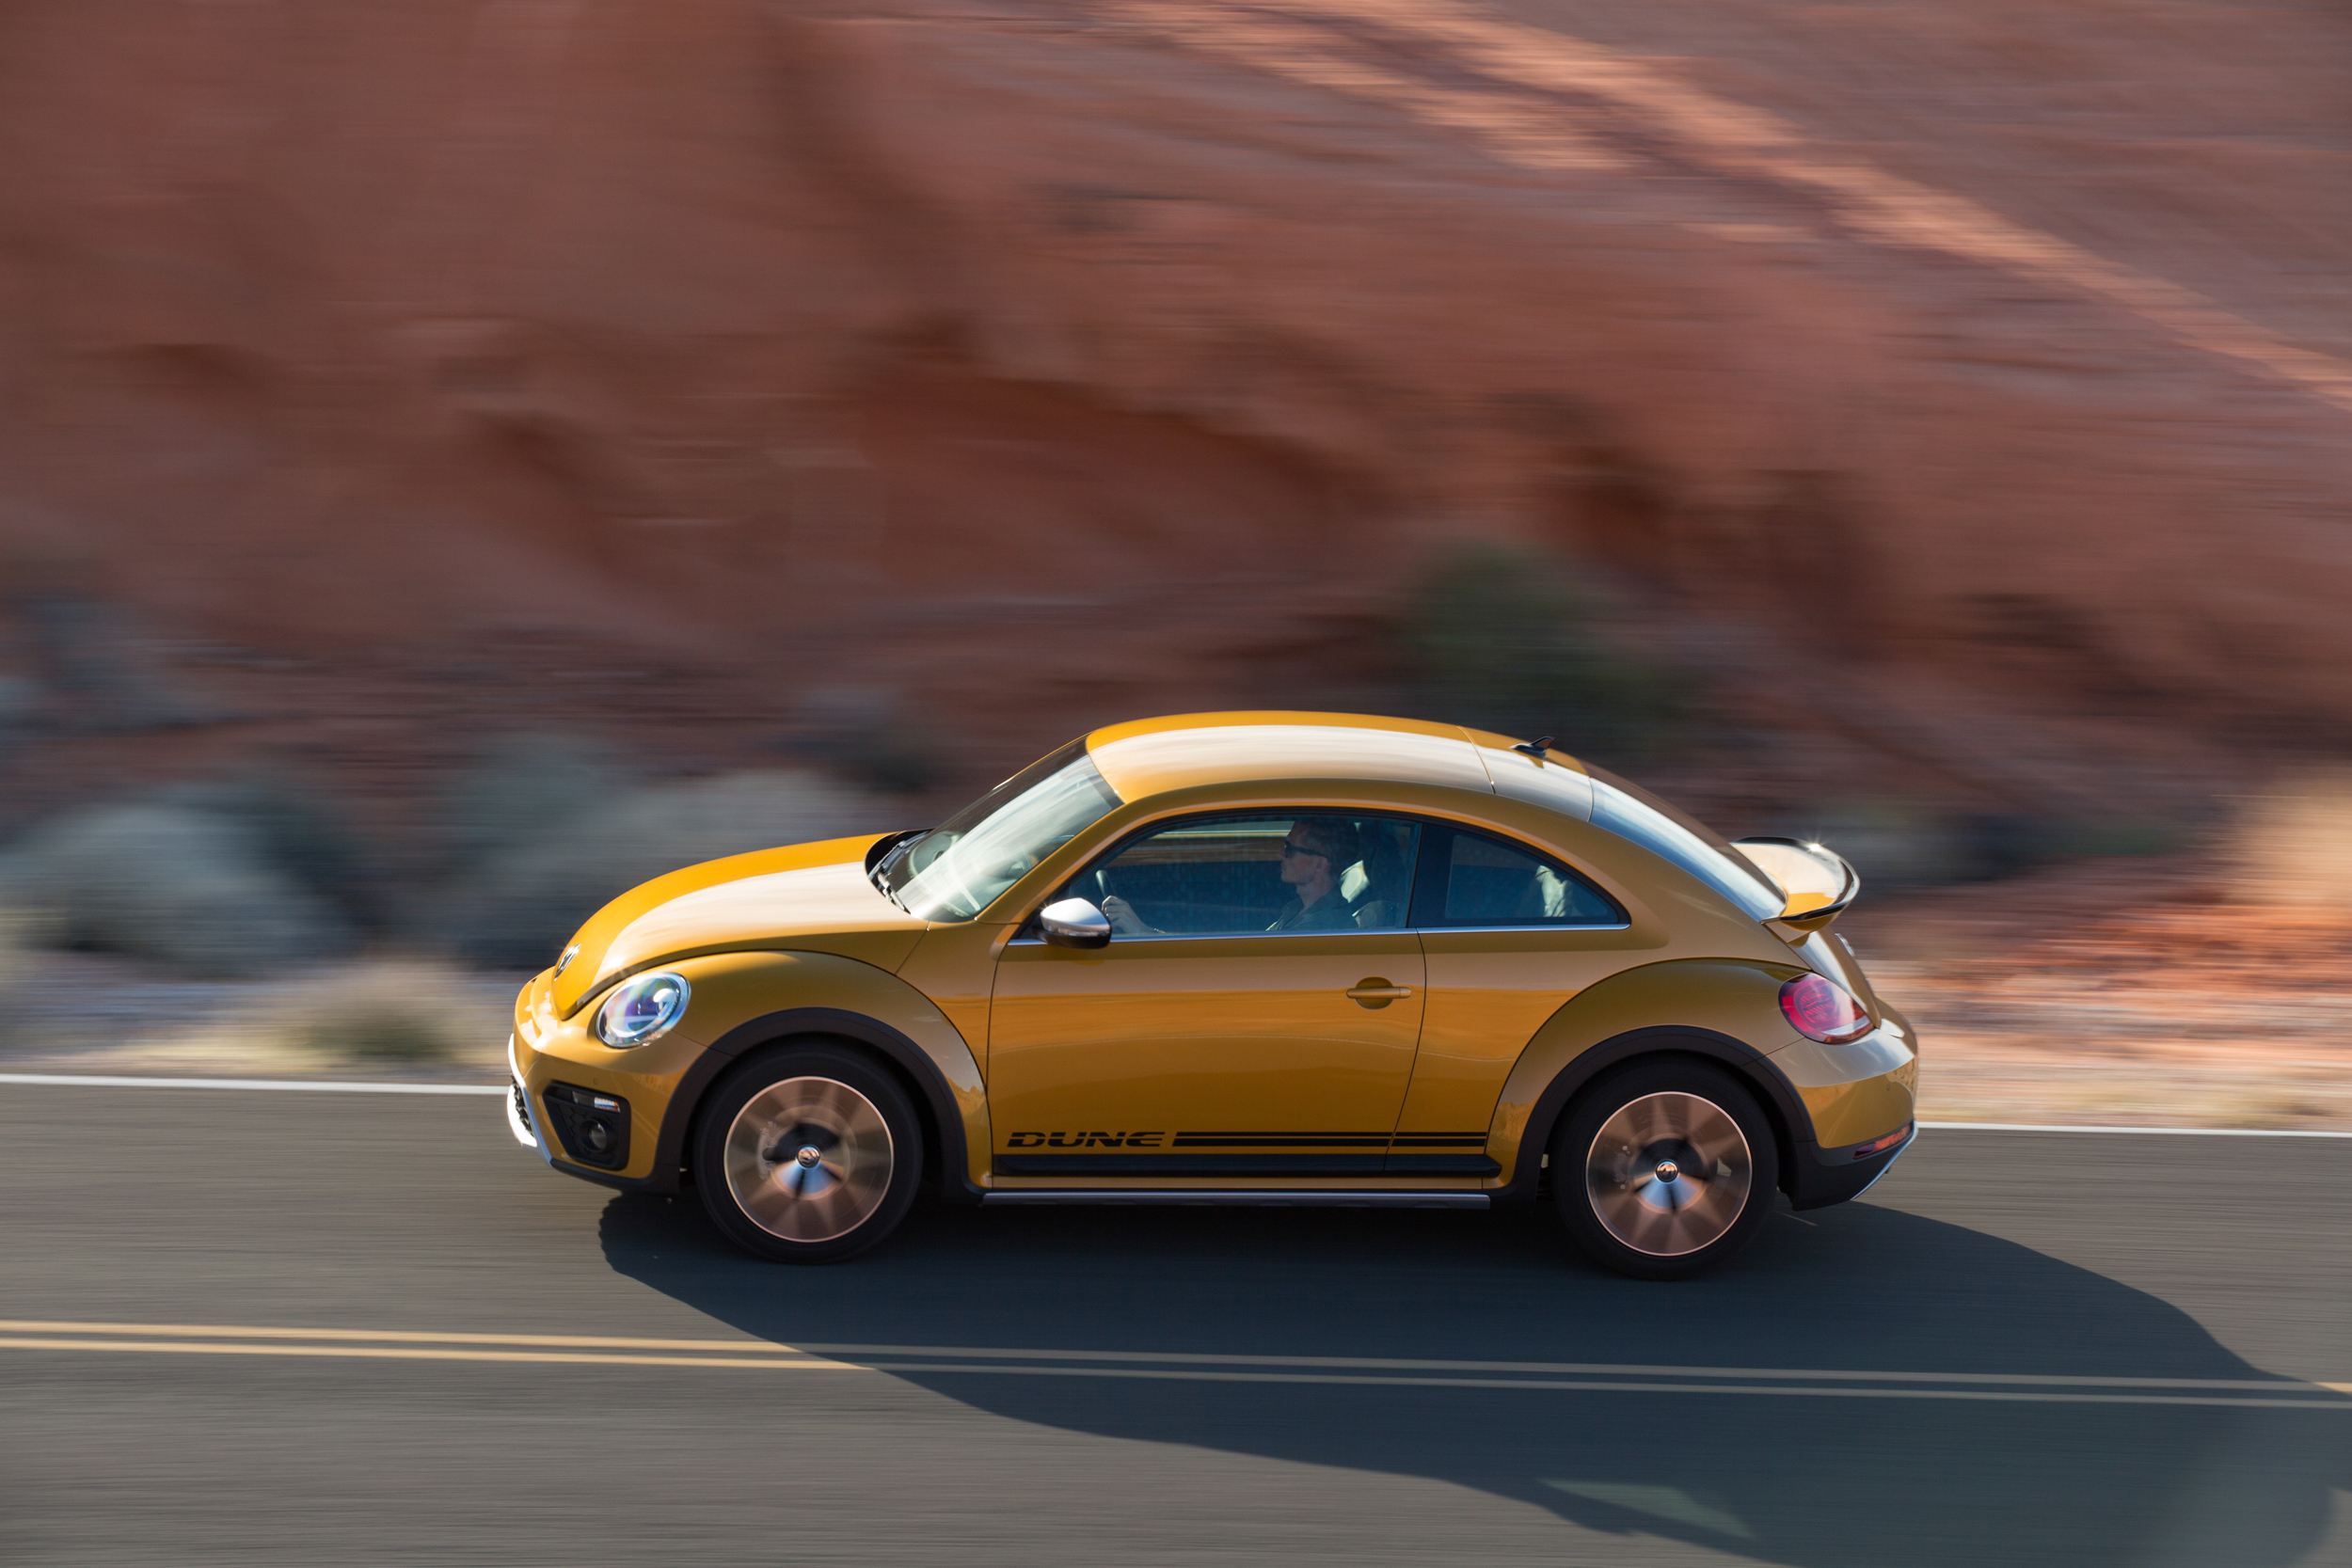 news h suspension recalled for problems convertible jetta price vehicles volkswagen affected beetle